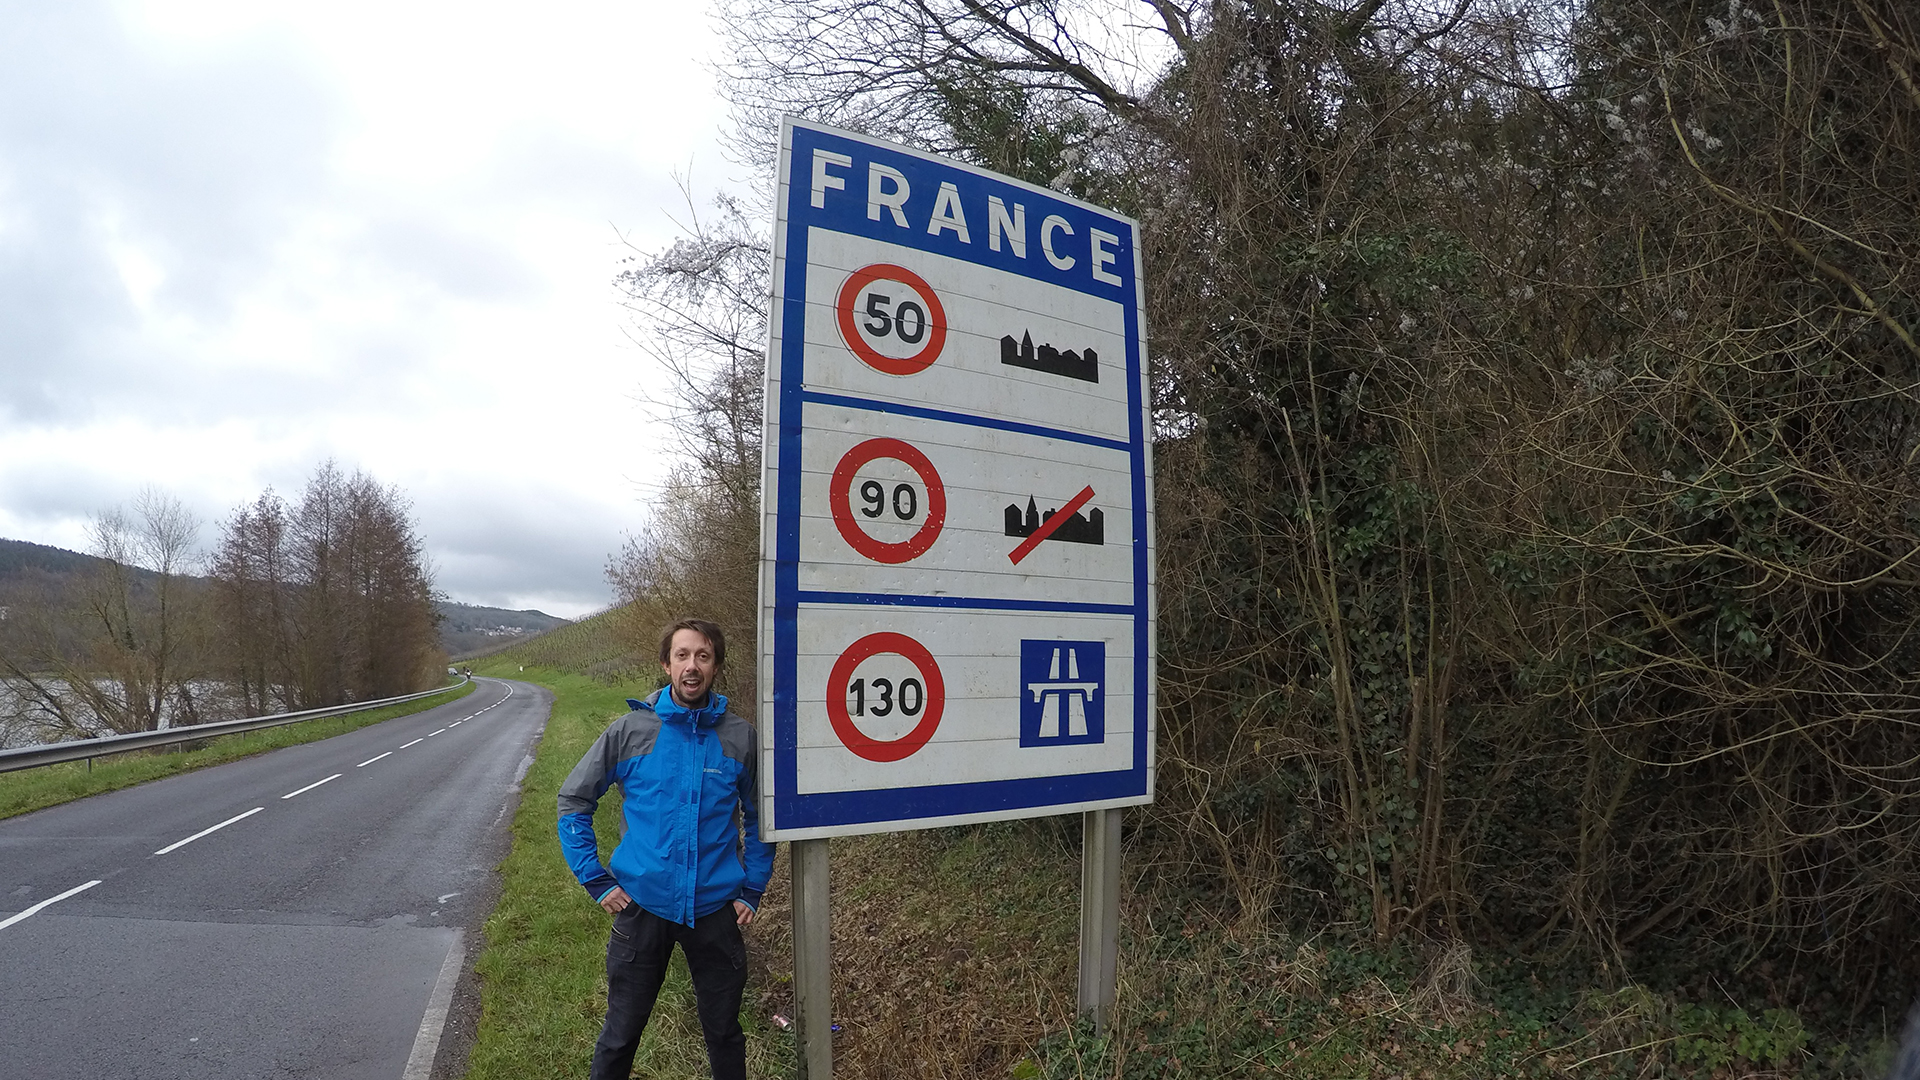 Dunc in France